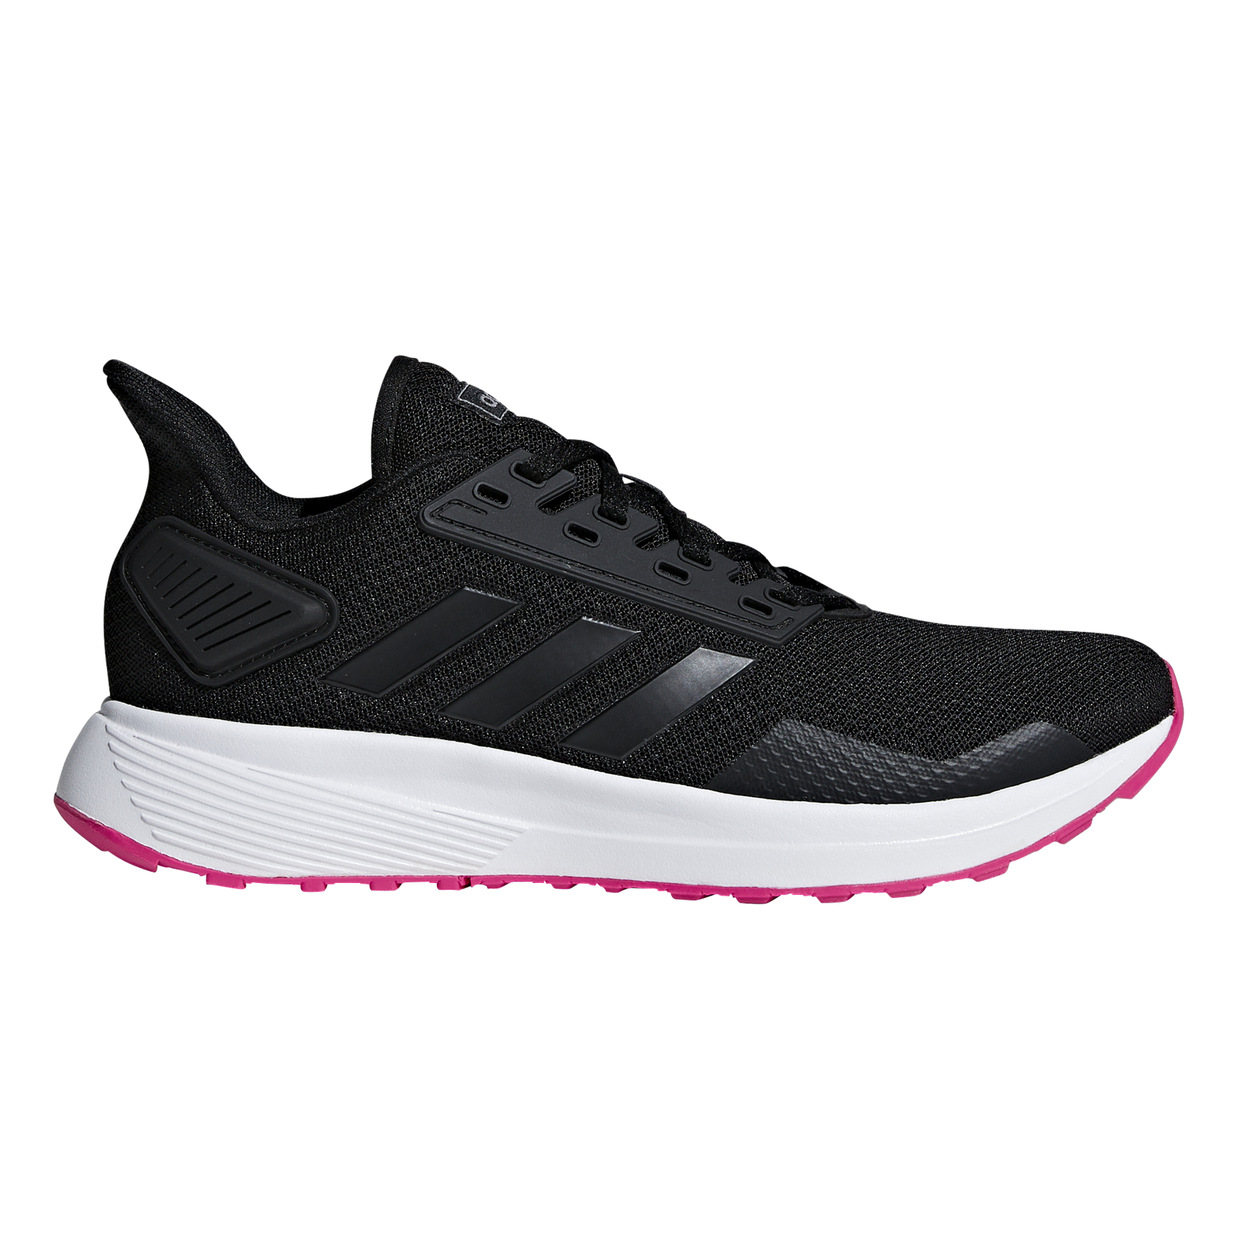 934cf98cb2f Adidas Duramo 9 - Womens Running Shoes - Core Black/Shock Pink ...